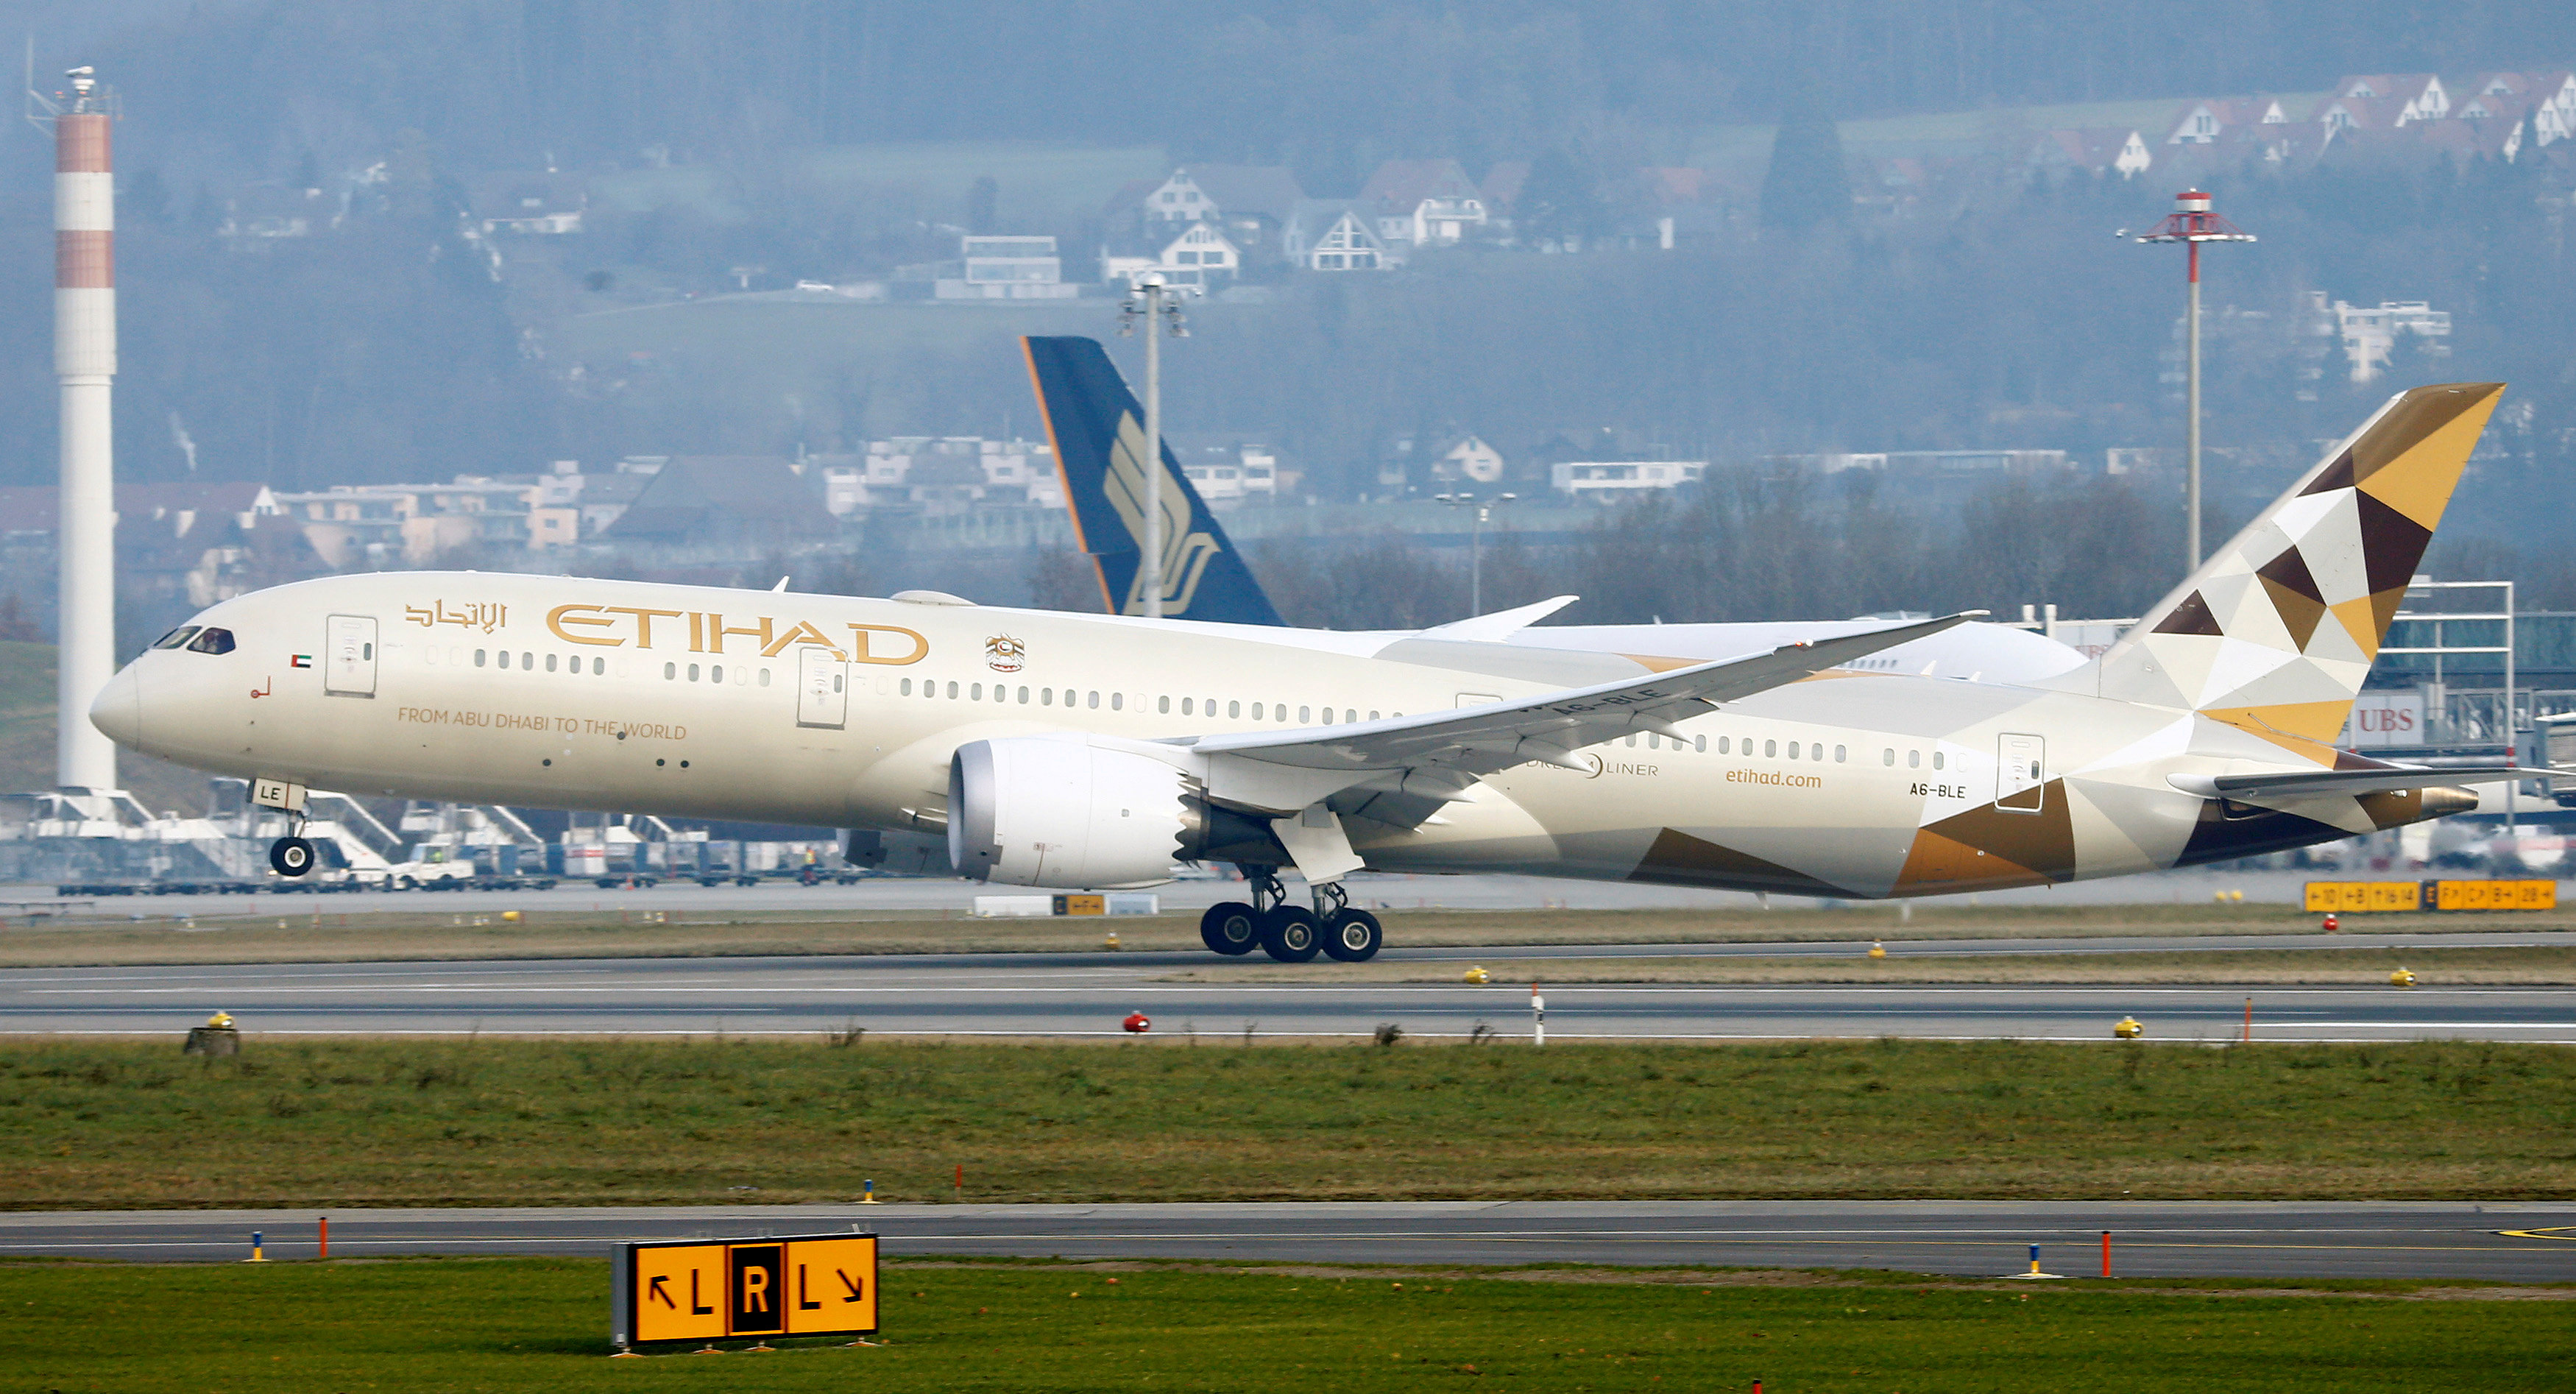 Airbus, Boeing risk order disruption as Etihad reviews strategy